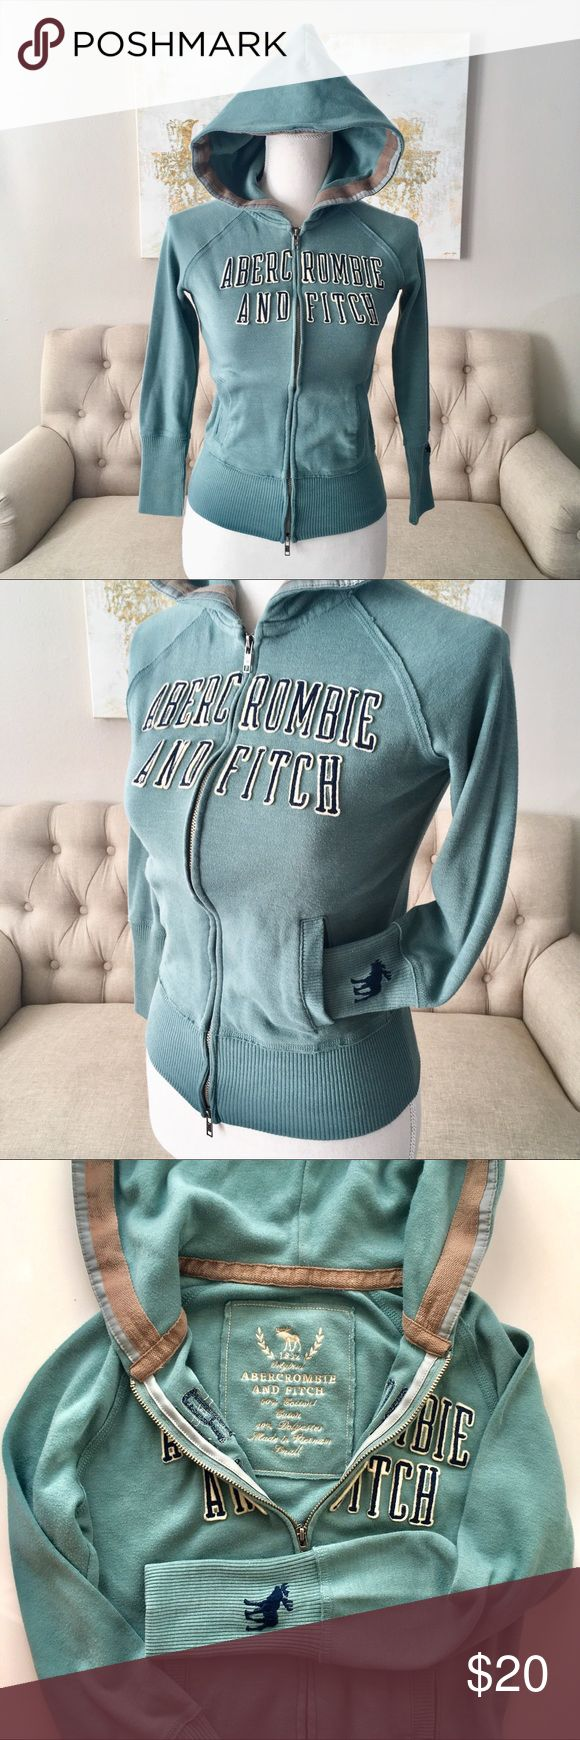 Abercrombie and Fitch Teal Hoodie Abercrombie and Fitch hoodie with double zipper. Like new condition, only used a few times. It's very cute. Just wish it wasnt too small for me anymore. Size small. Abercrombie & Fitch Jackets & Coats